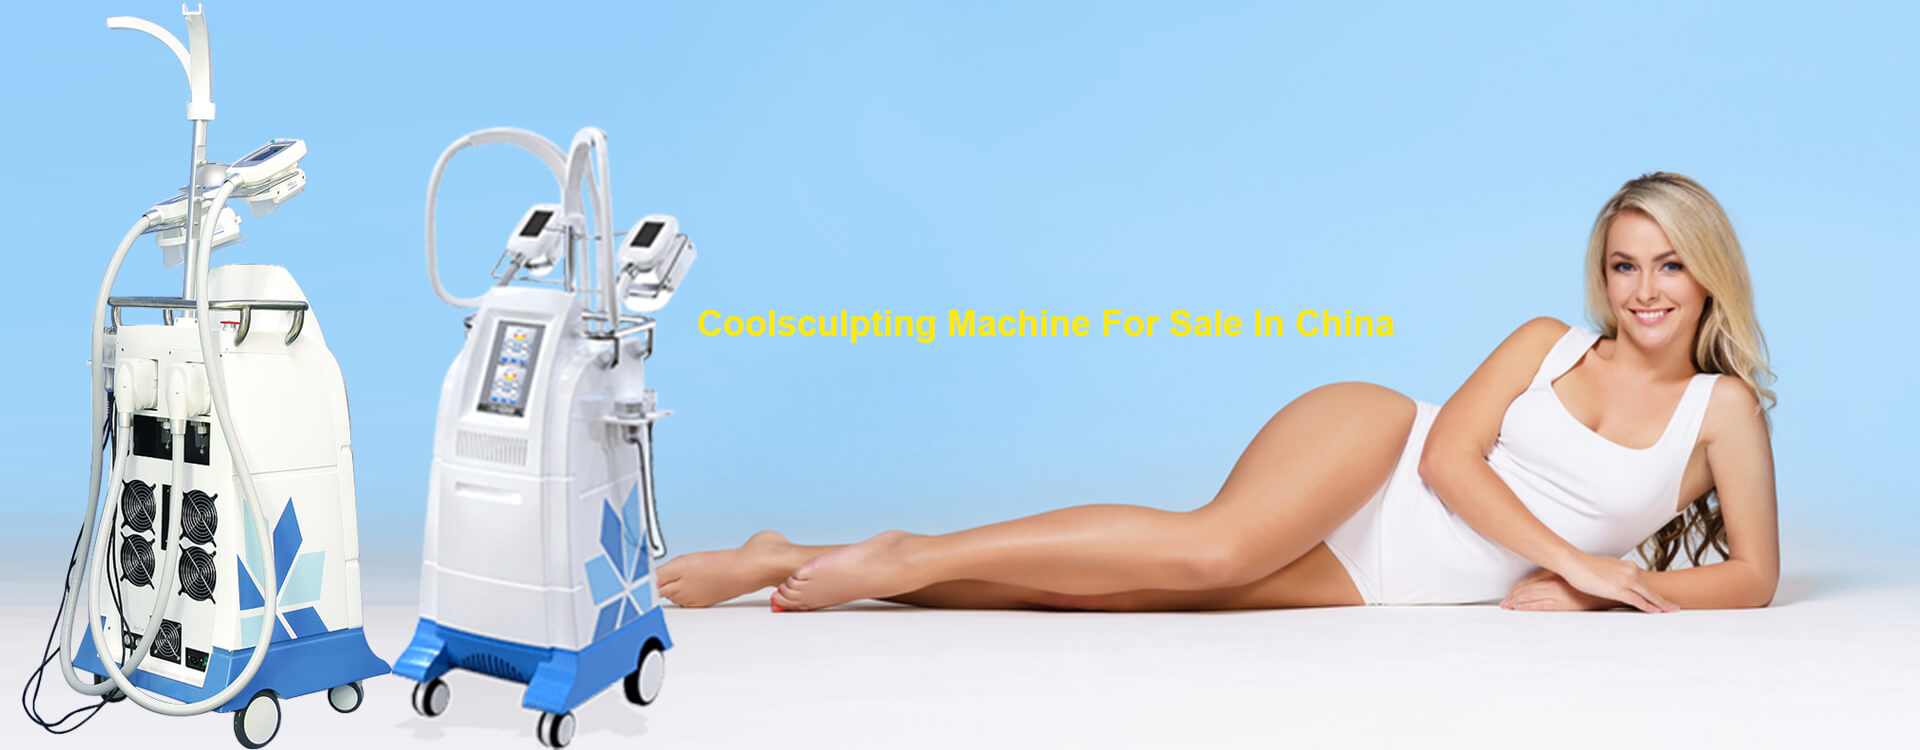 Coolsculpting Machine For Sale In China